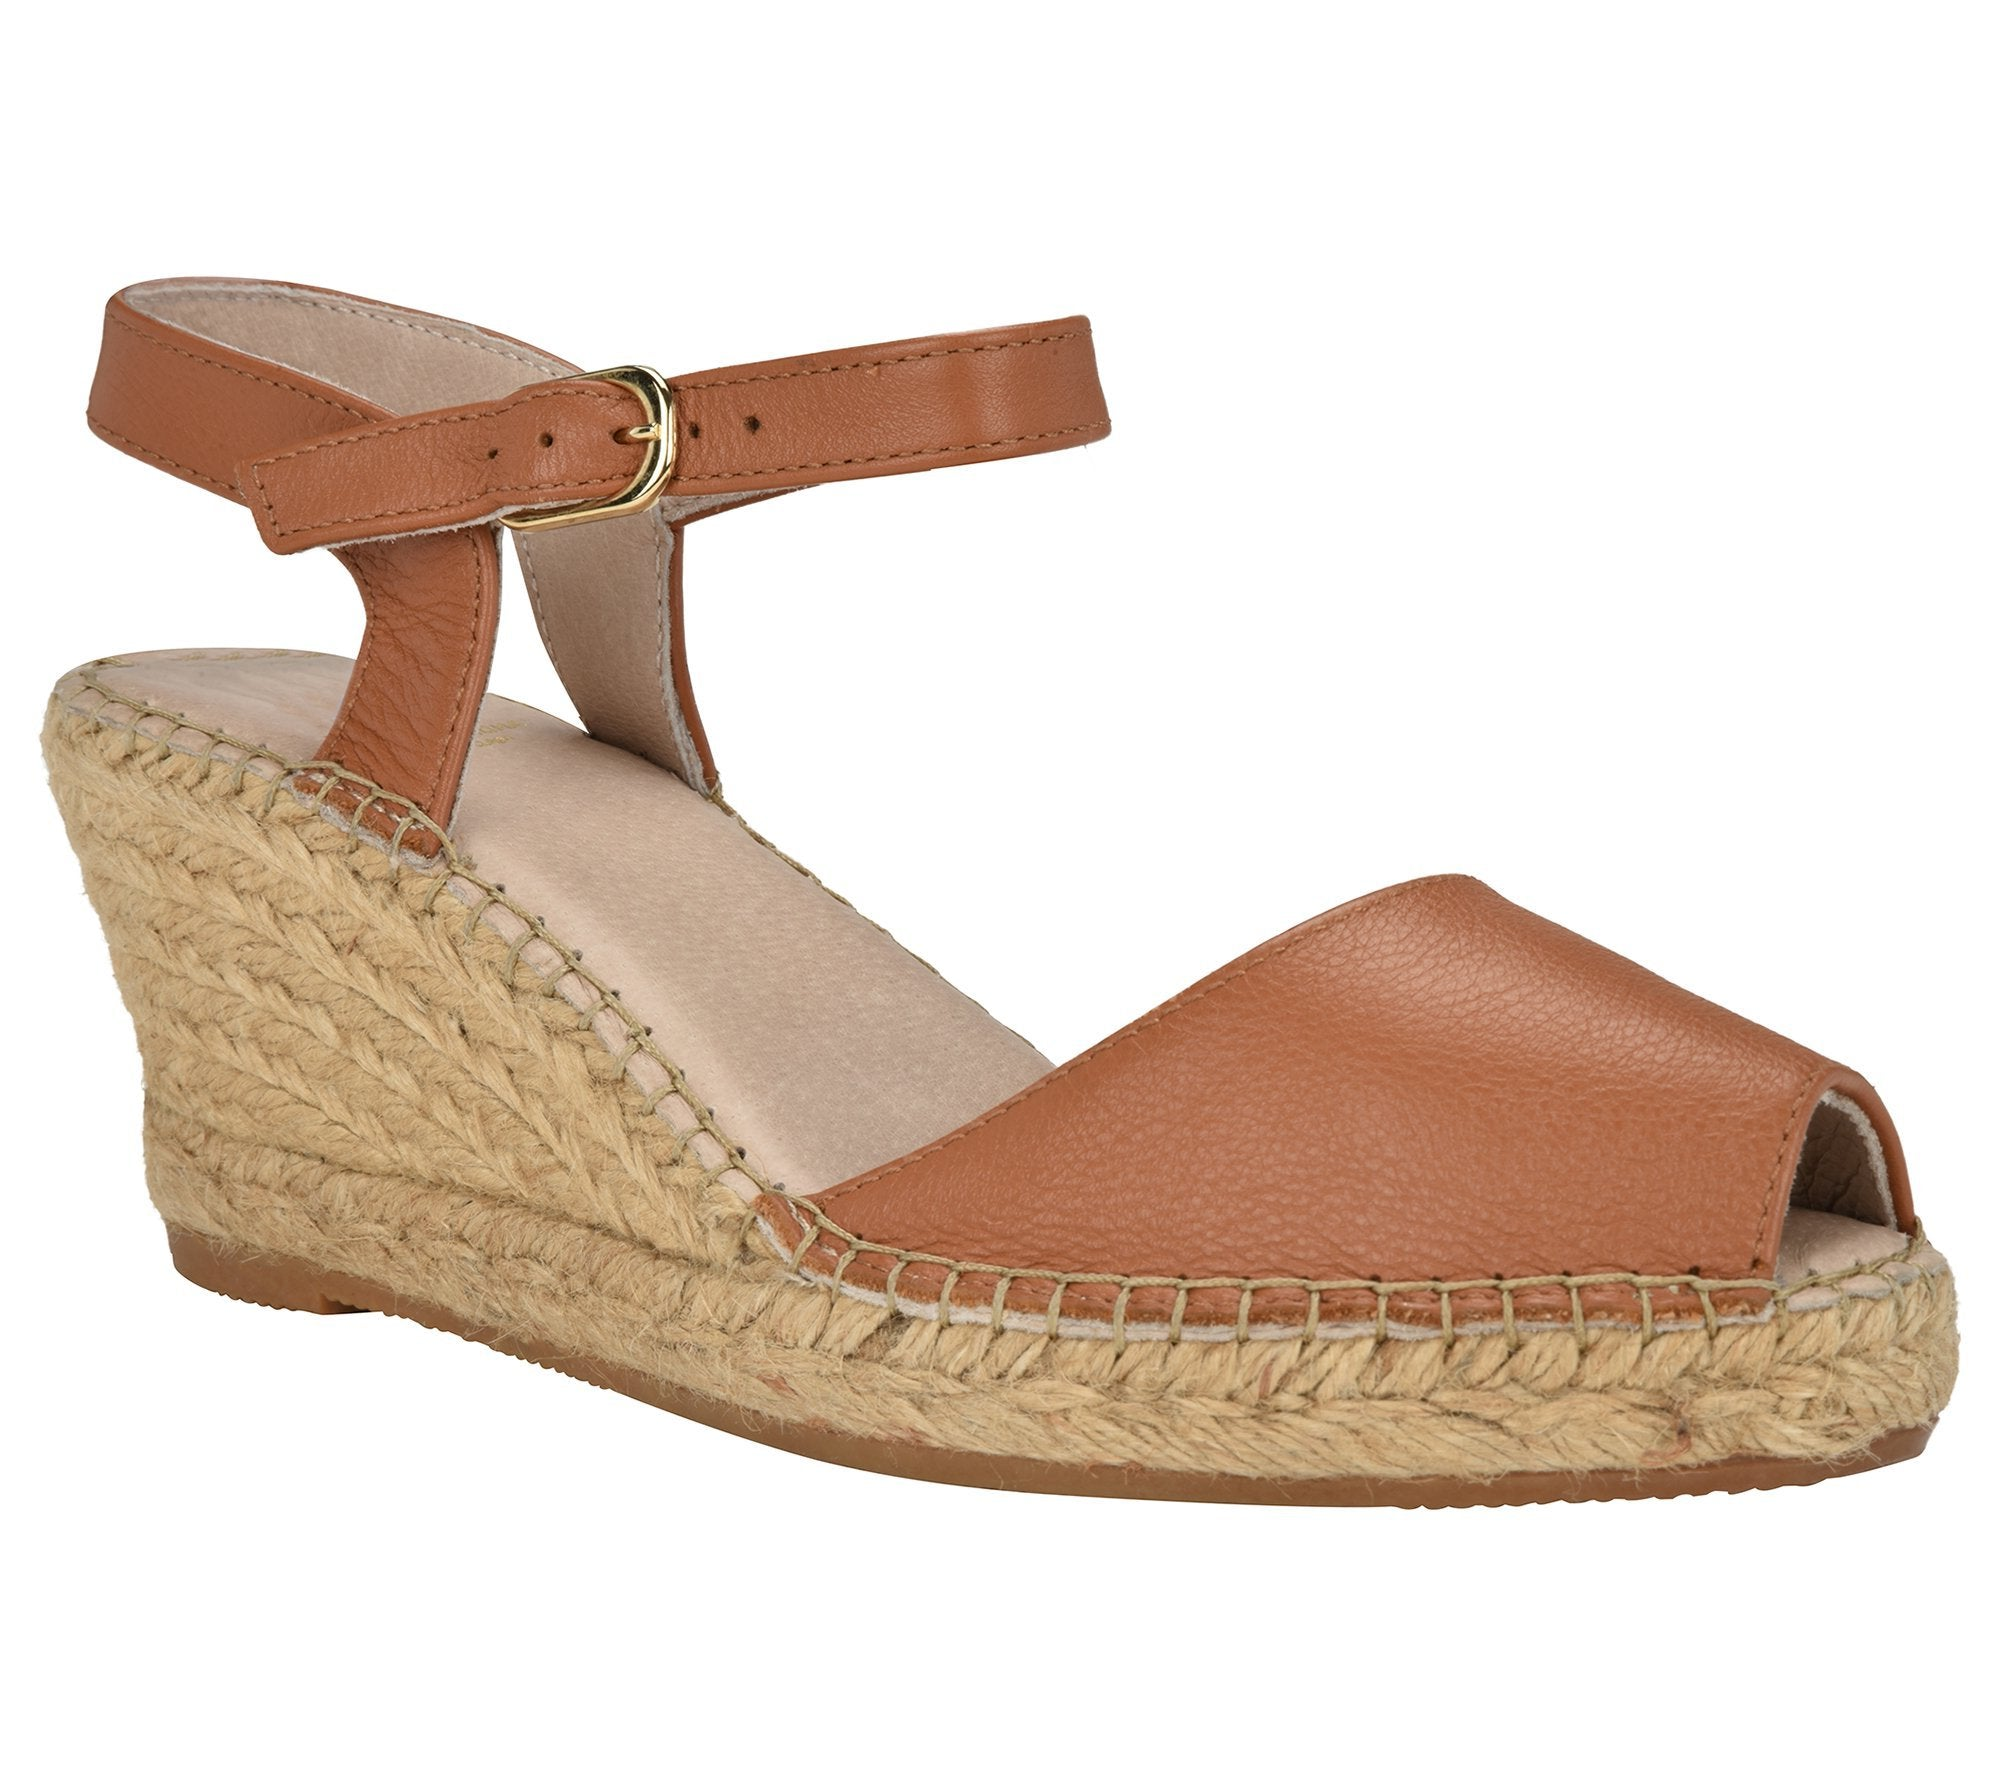 762be8a4c1856a Ana Cognac Leather Wedge espadrille Sandal – Andrew Stevens Footwear